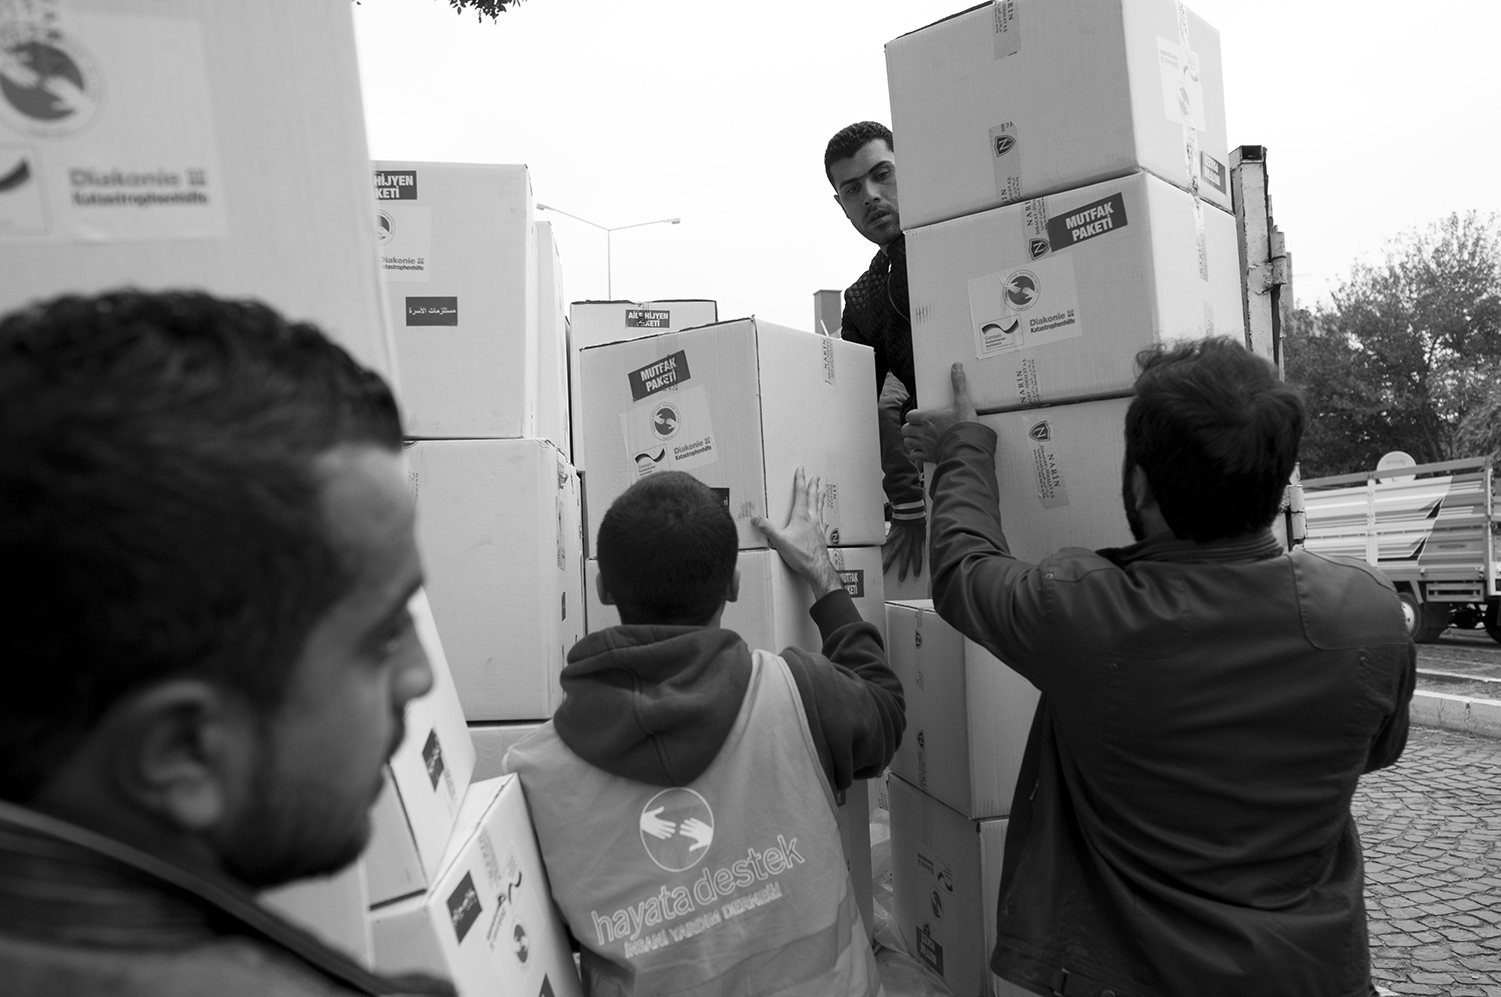 Volunteers and Hayata Destek workers finish loading a truck with aid boxes which are designated for Syrians living outside of the refugee camps around Suruç.